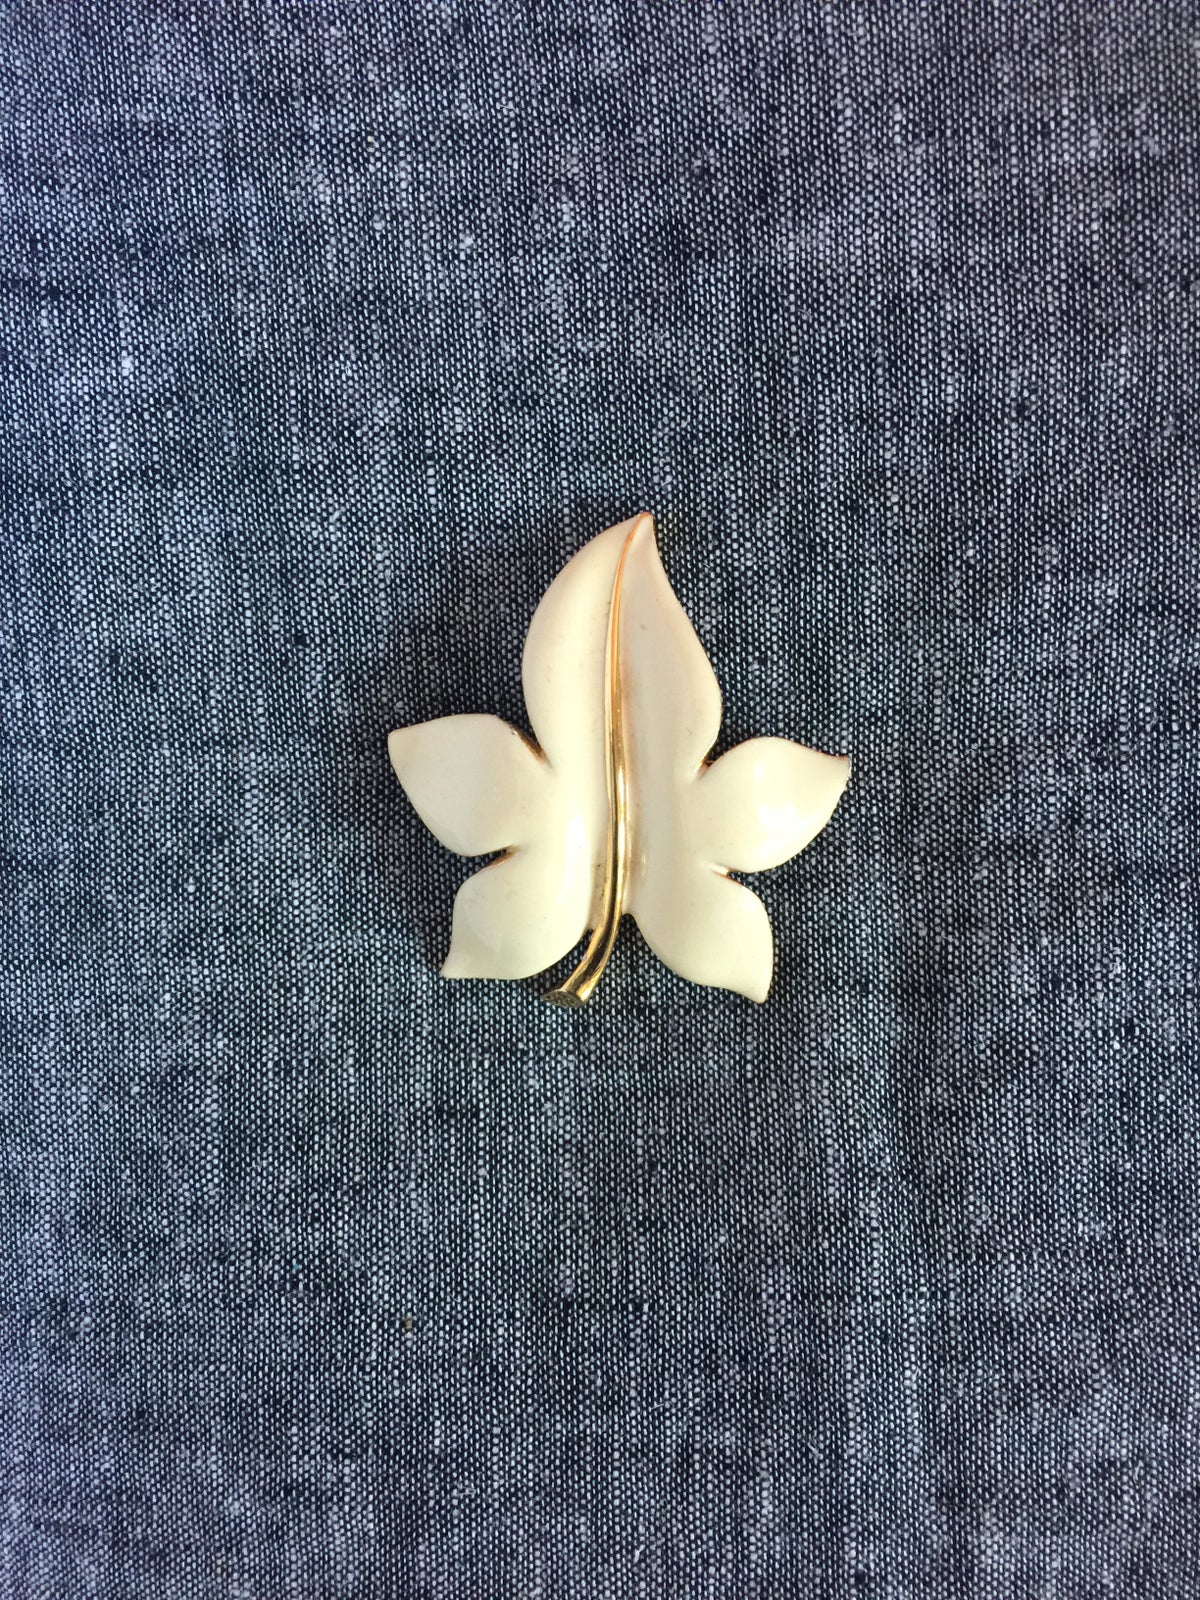 Image of Vintage Ivory Leaf Pin